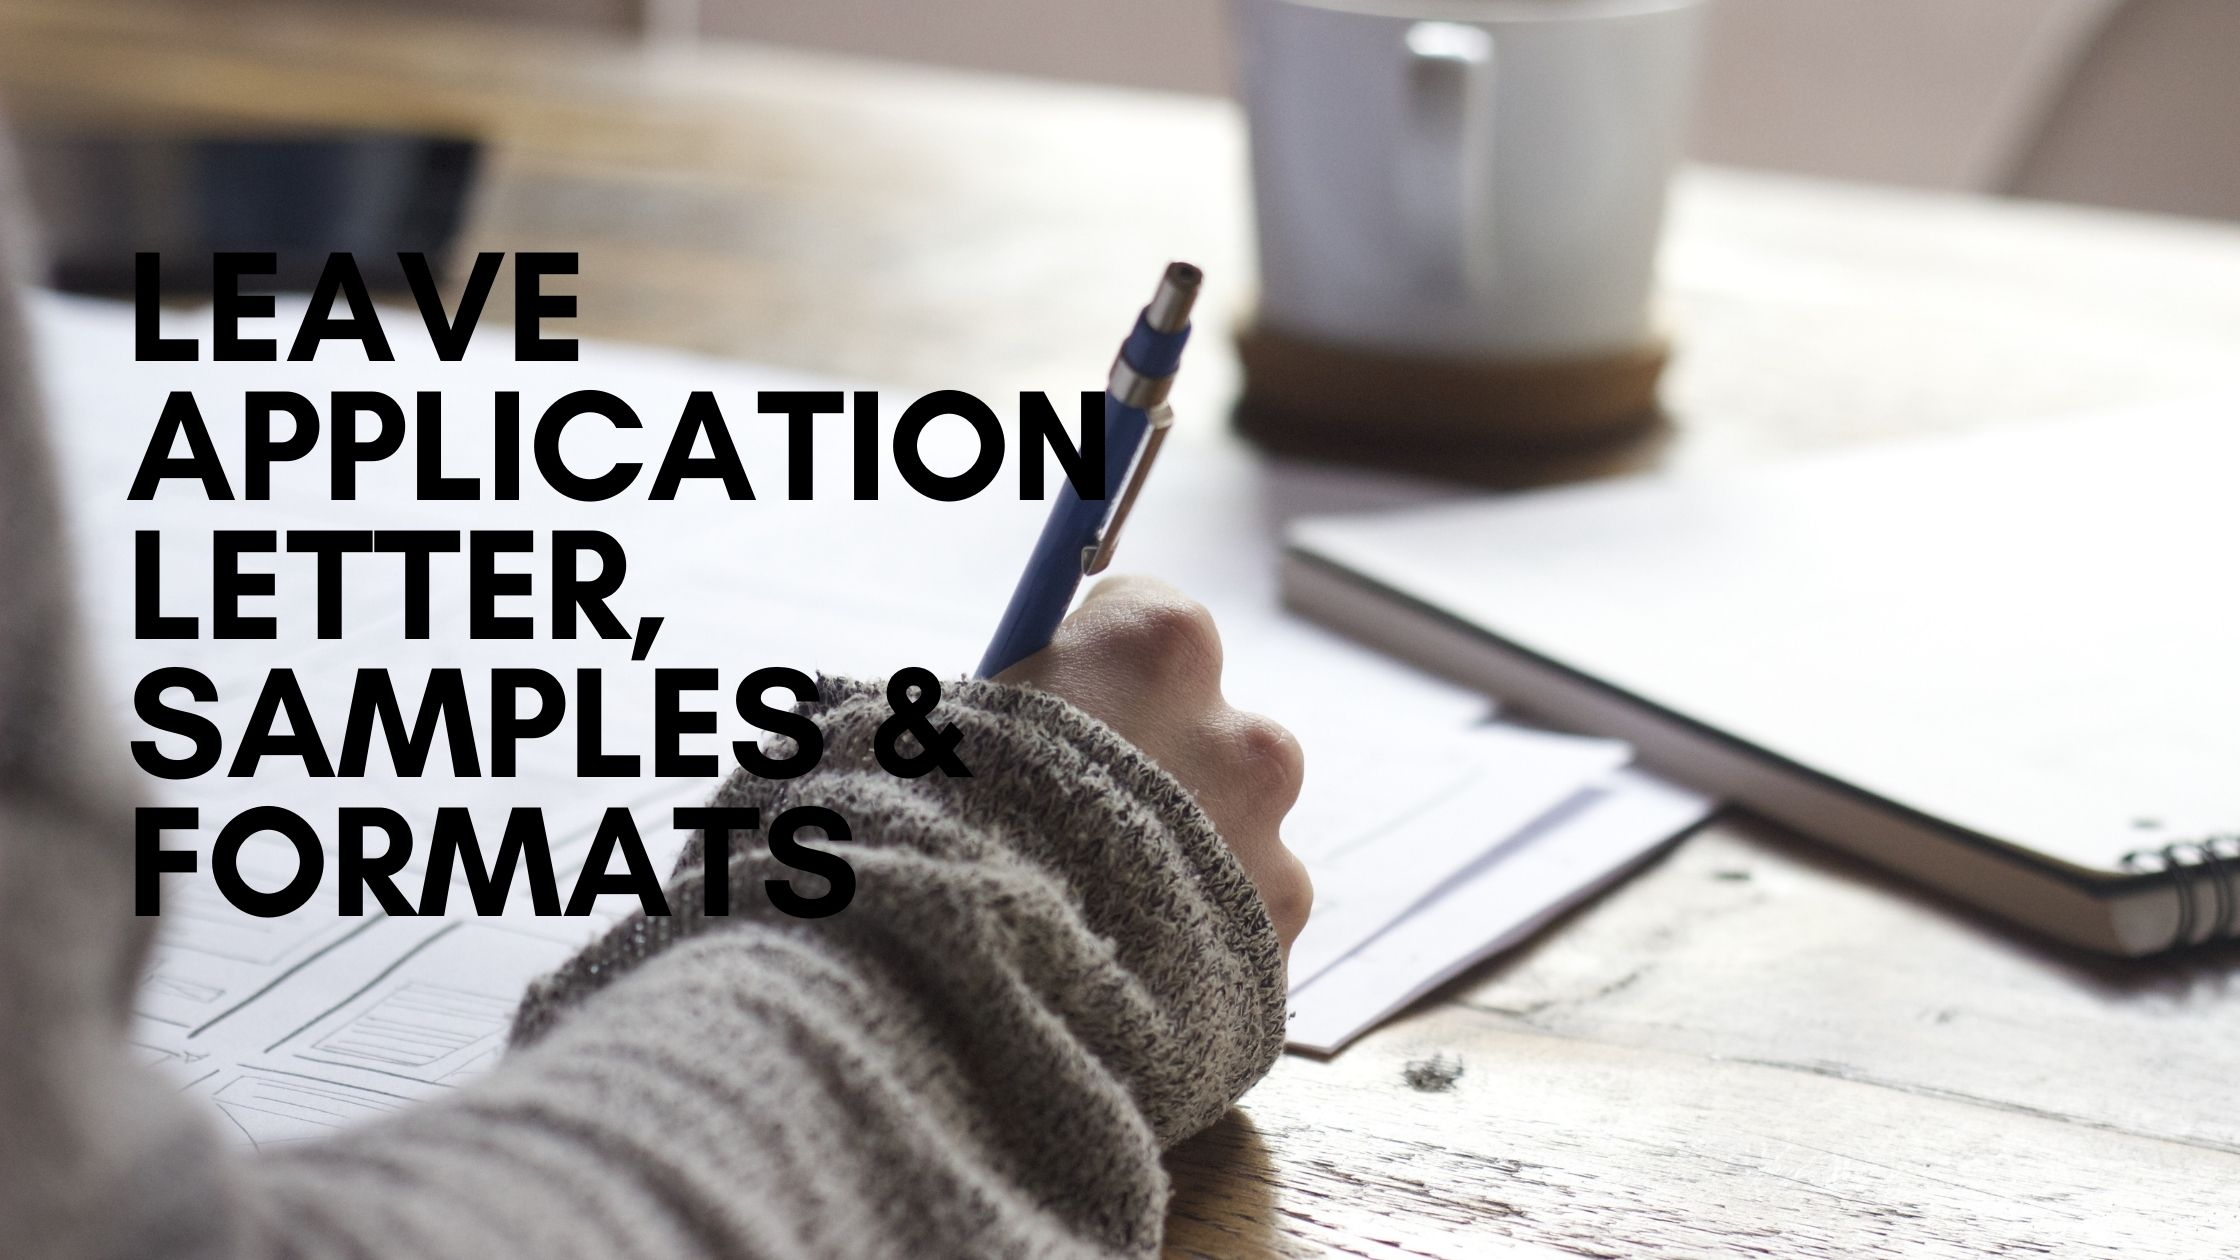 Leave Application Letter Sample | How To Write A Leave Application Letter | Leave Application For Office | Sick Leave | Maternity Leave | casual Leave, Etc.